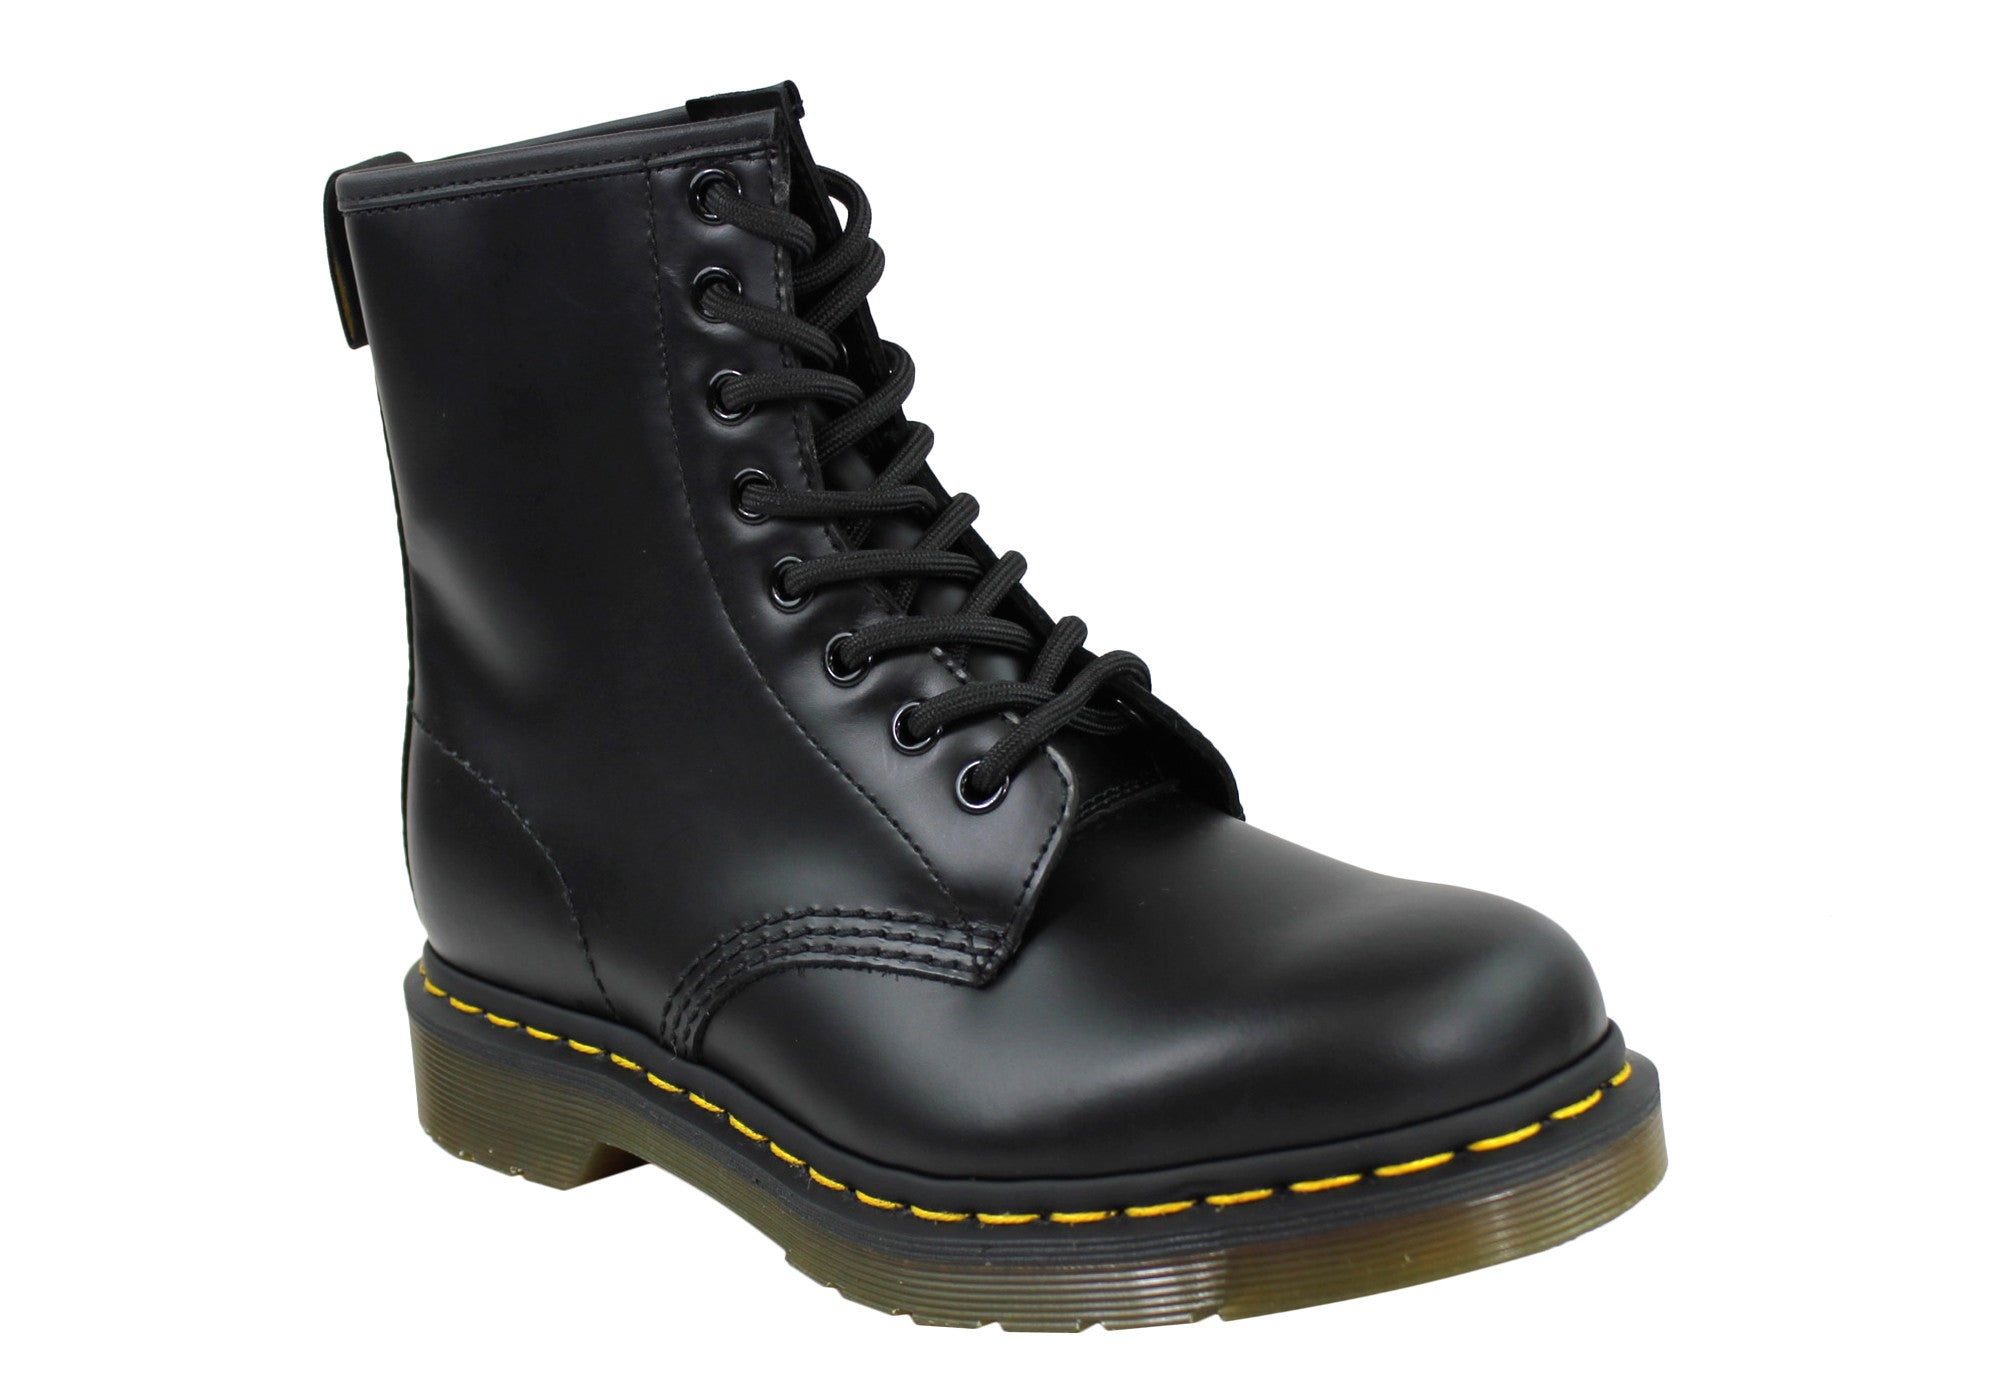 Dr Martens 1460 Black Smooth Mens Leather Boots